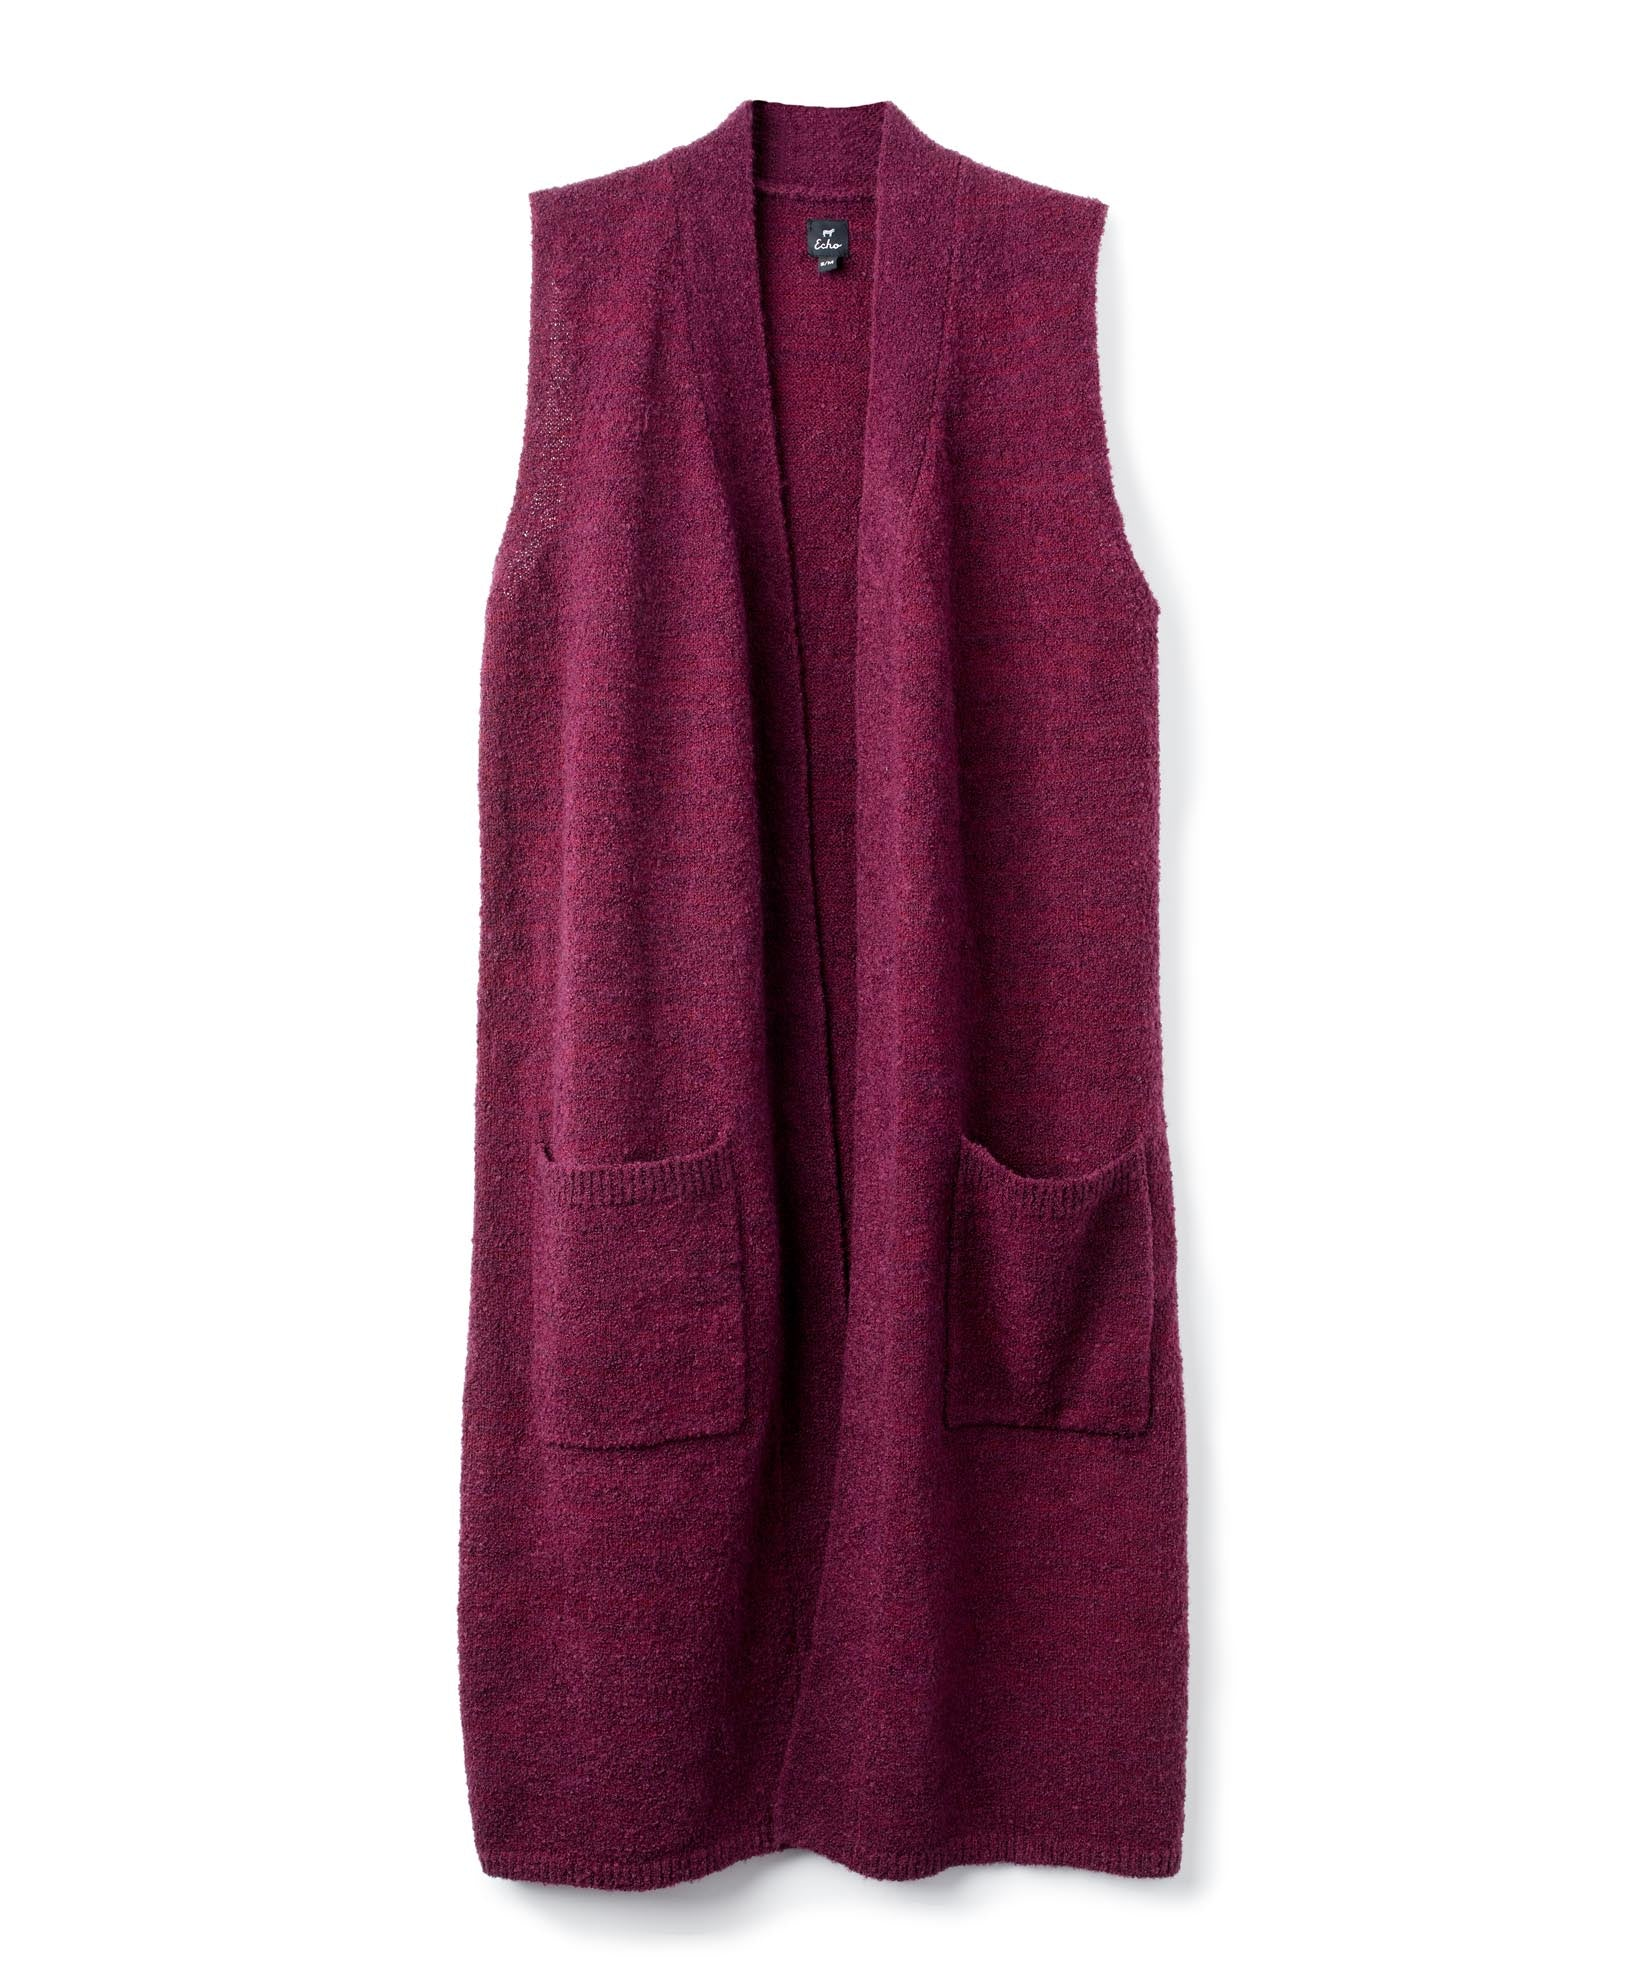 Fig - Knit Cross Over Vest